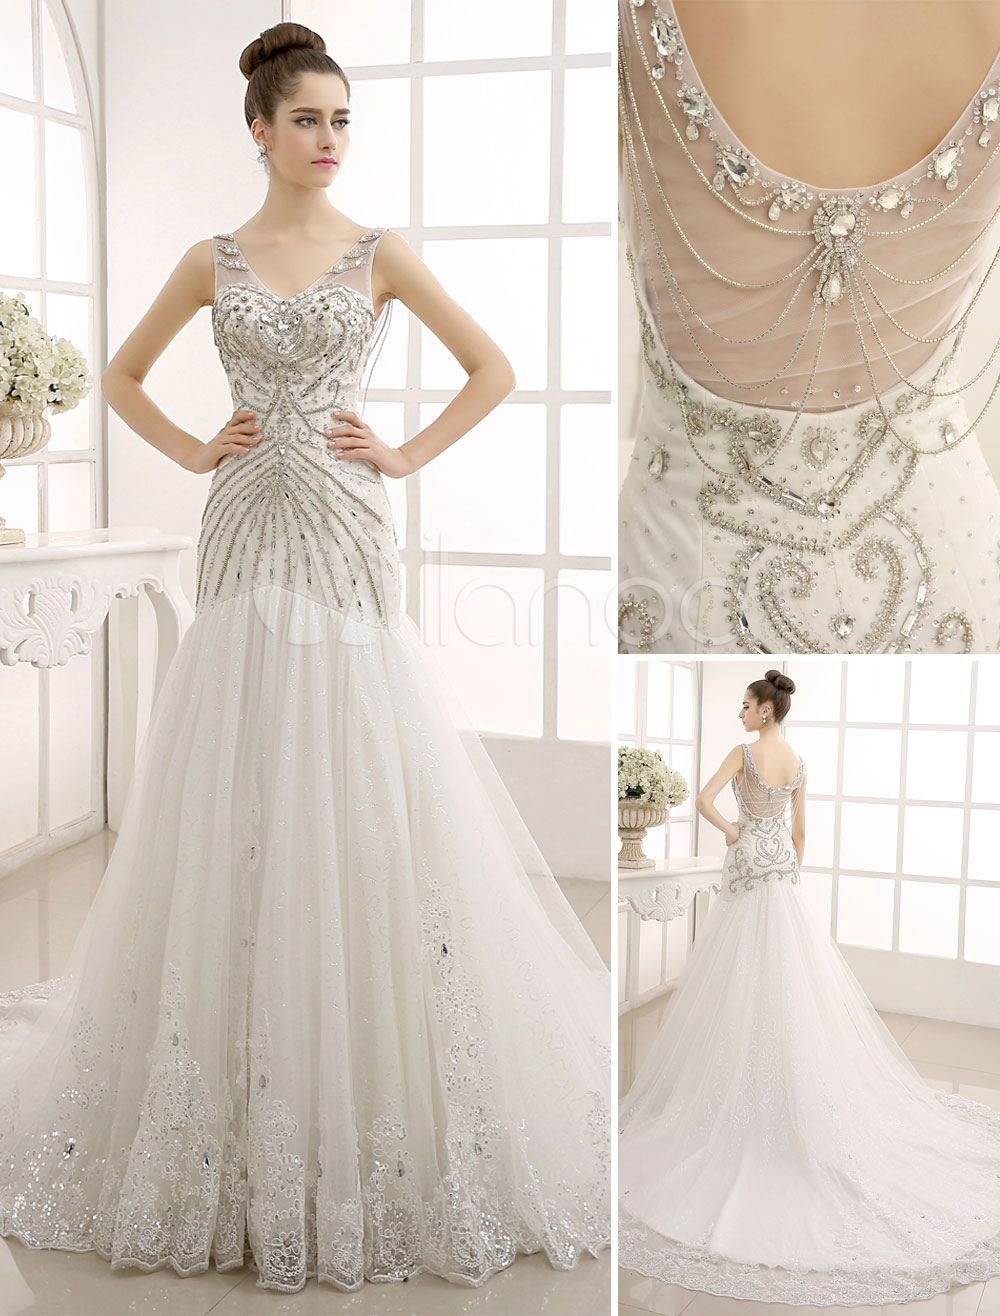 Vneck backless mermaid wedding gown with netting love song